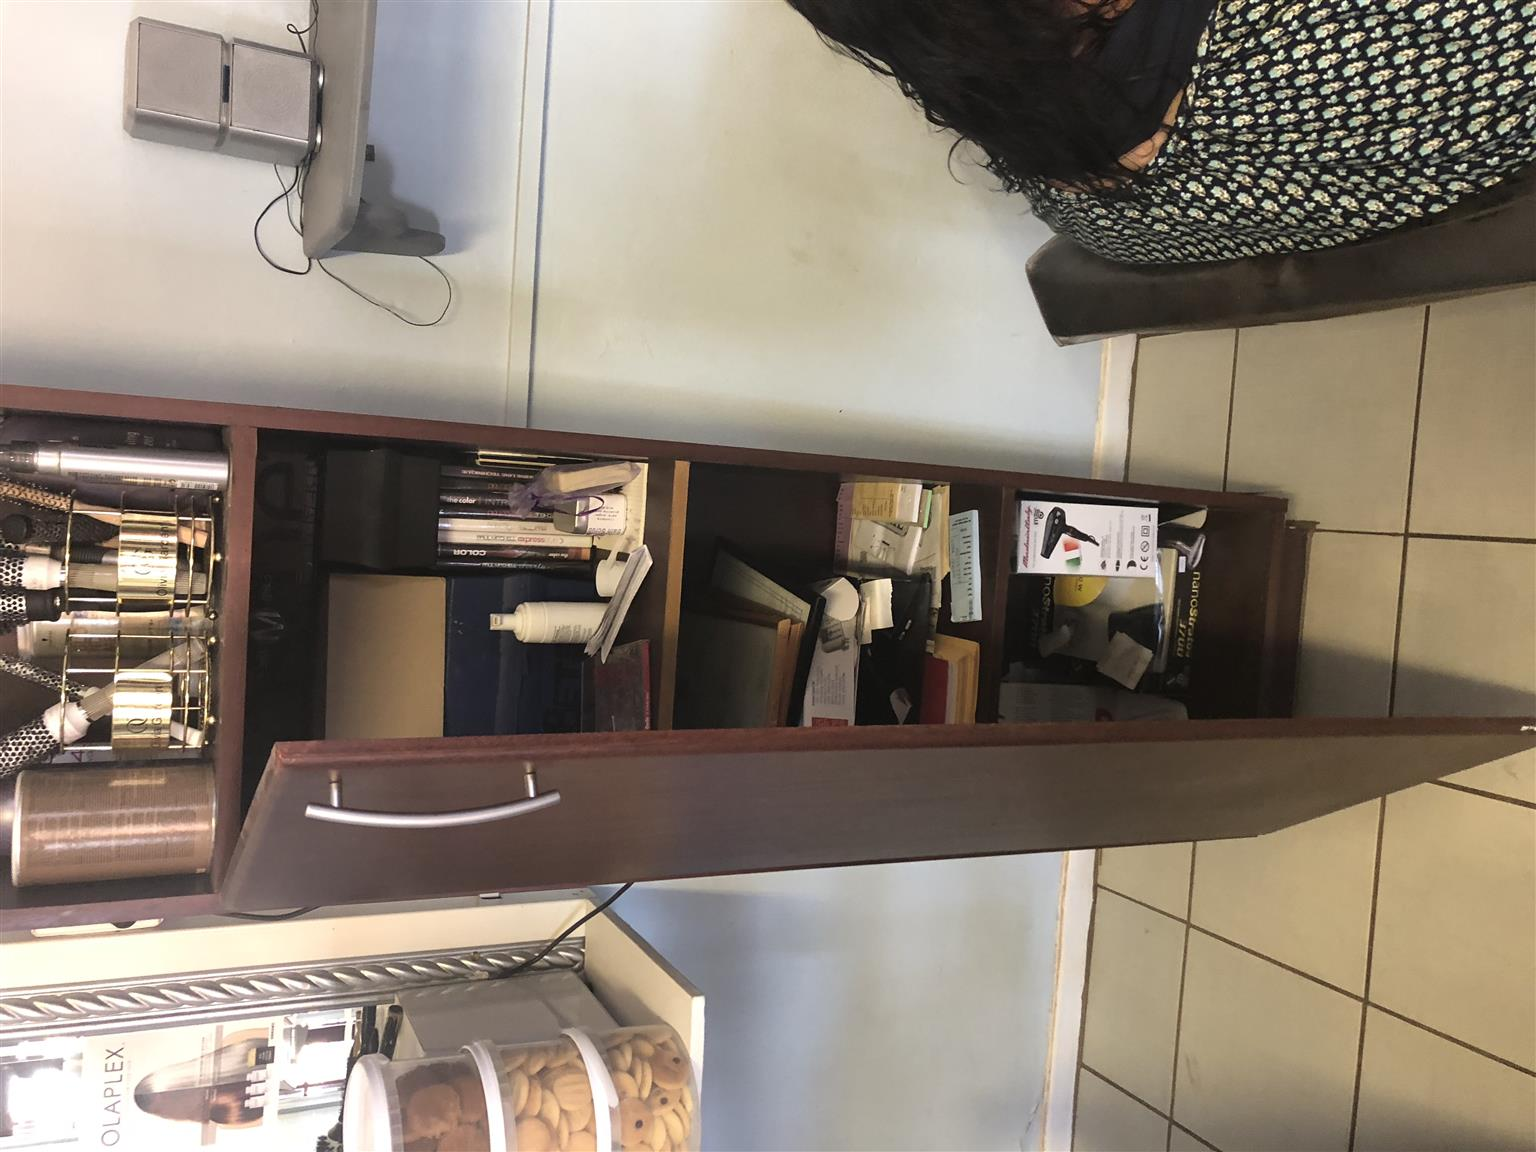 4x Wooden Tall Cabinets with Mirrors and one door - Hair Salon Equipment